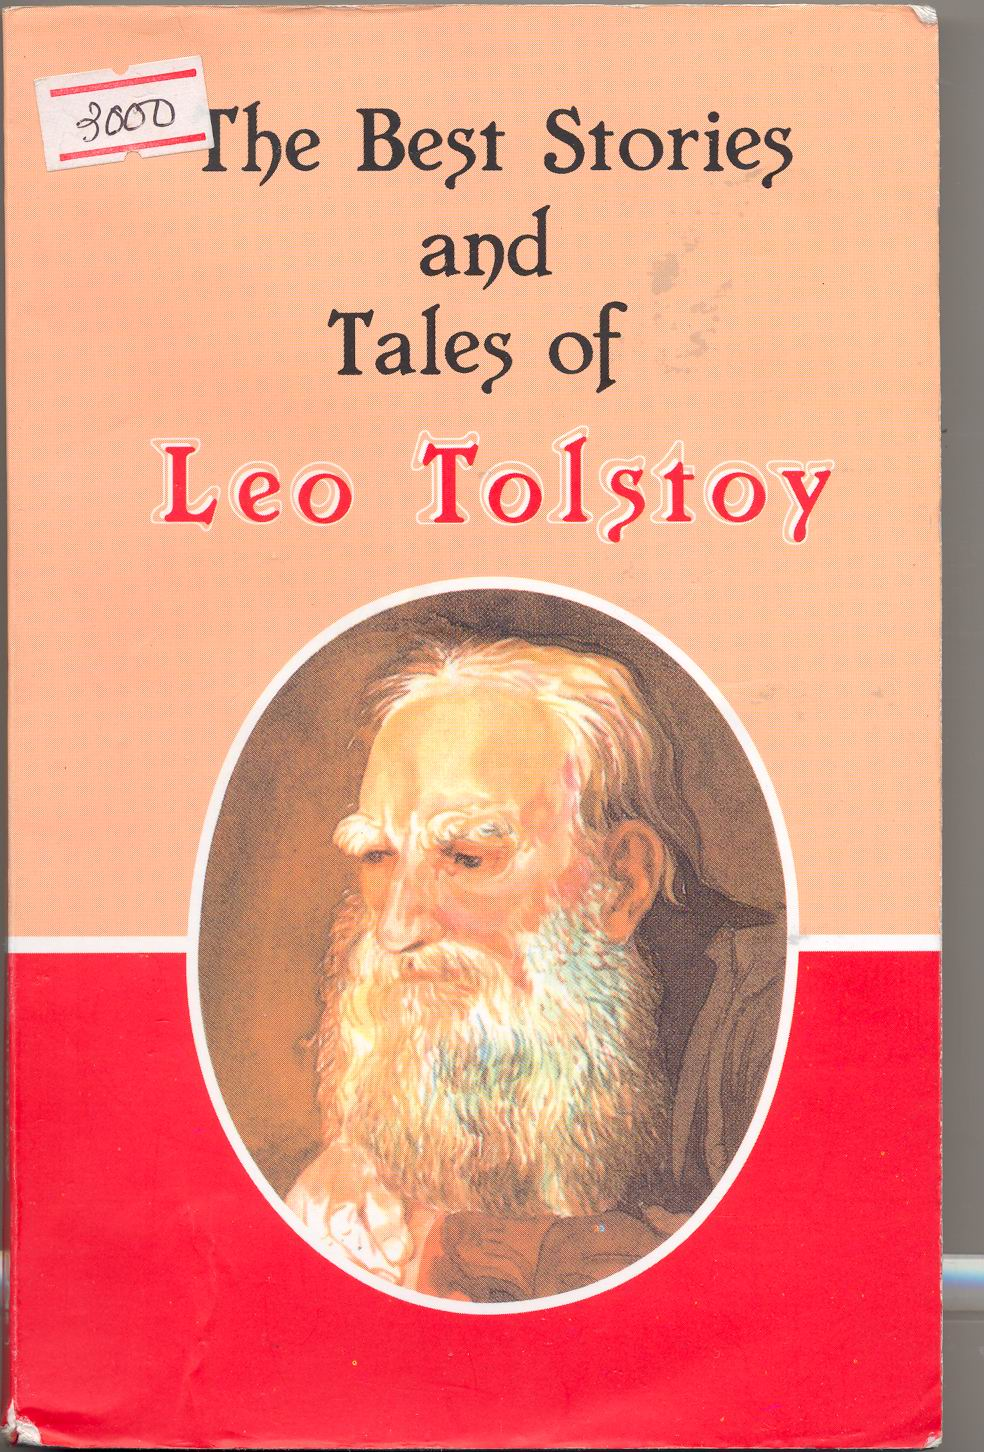 THE BEST STORIES AND TALES OF LEO TOLSTOY